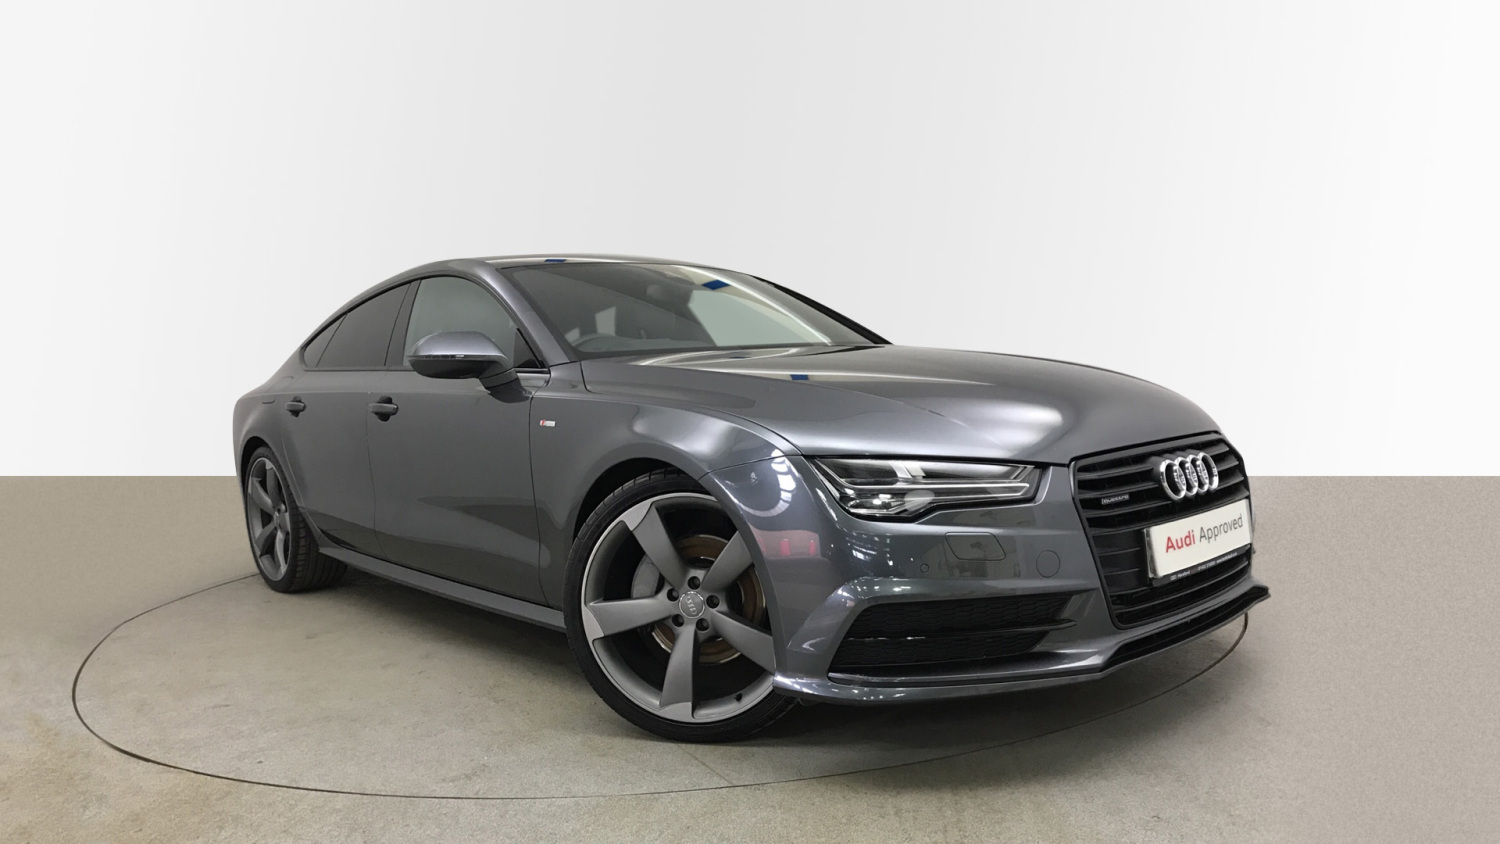 used audi a7 3 0 tdi quattro 272 black edition 5dr s tronic diesel hatchback for sale bristol. Black Bedroom Furniture Sets. Home Design Ideas